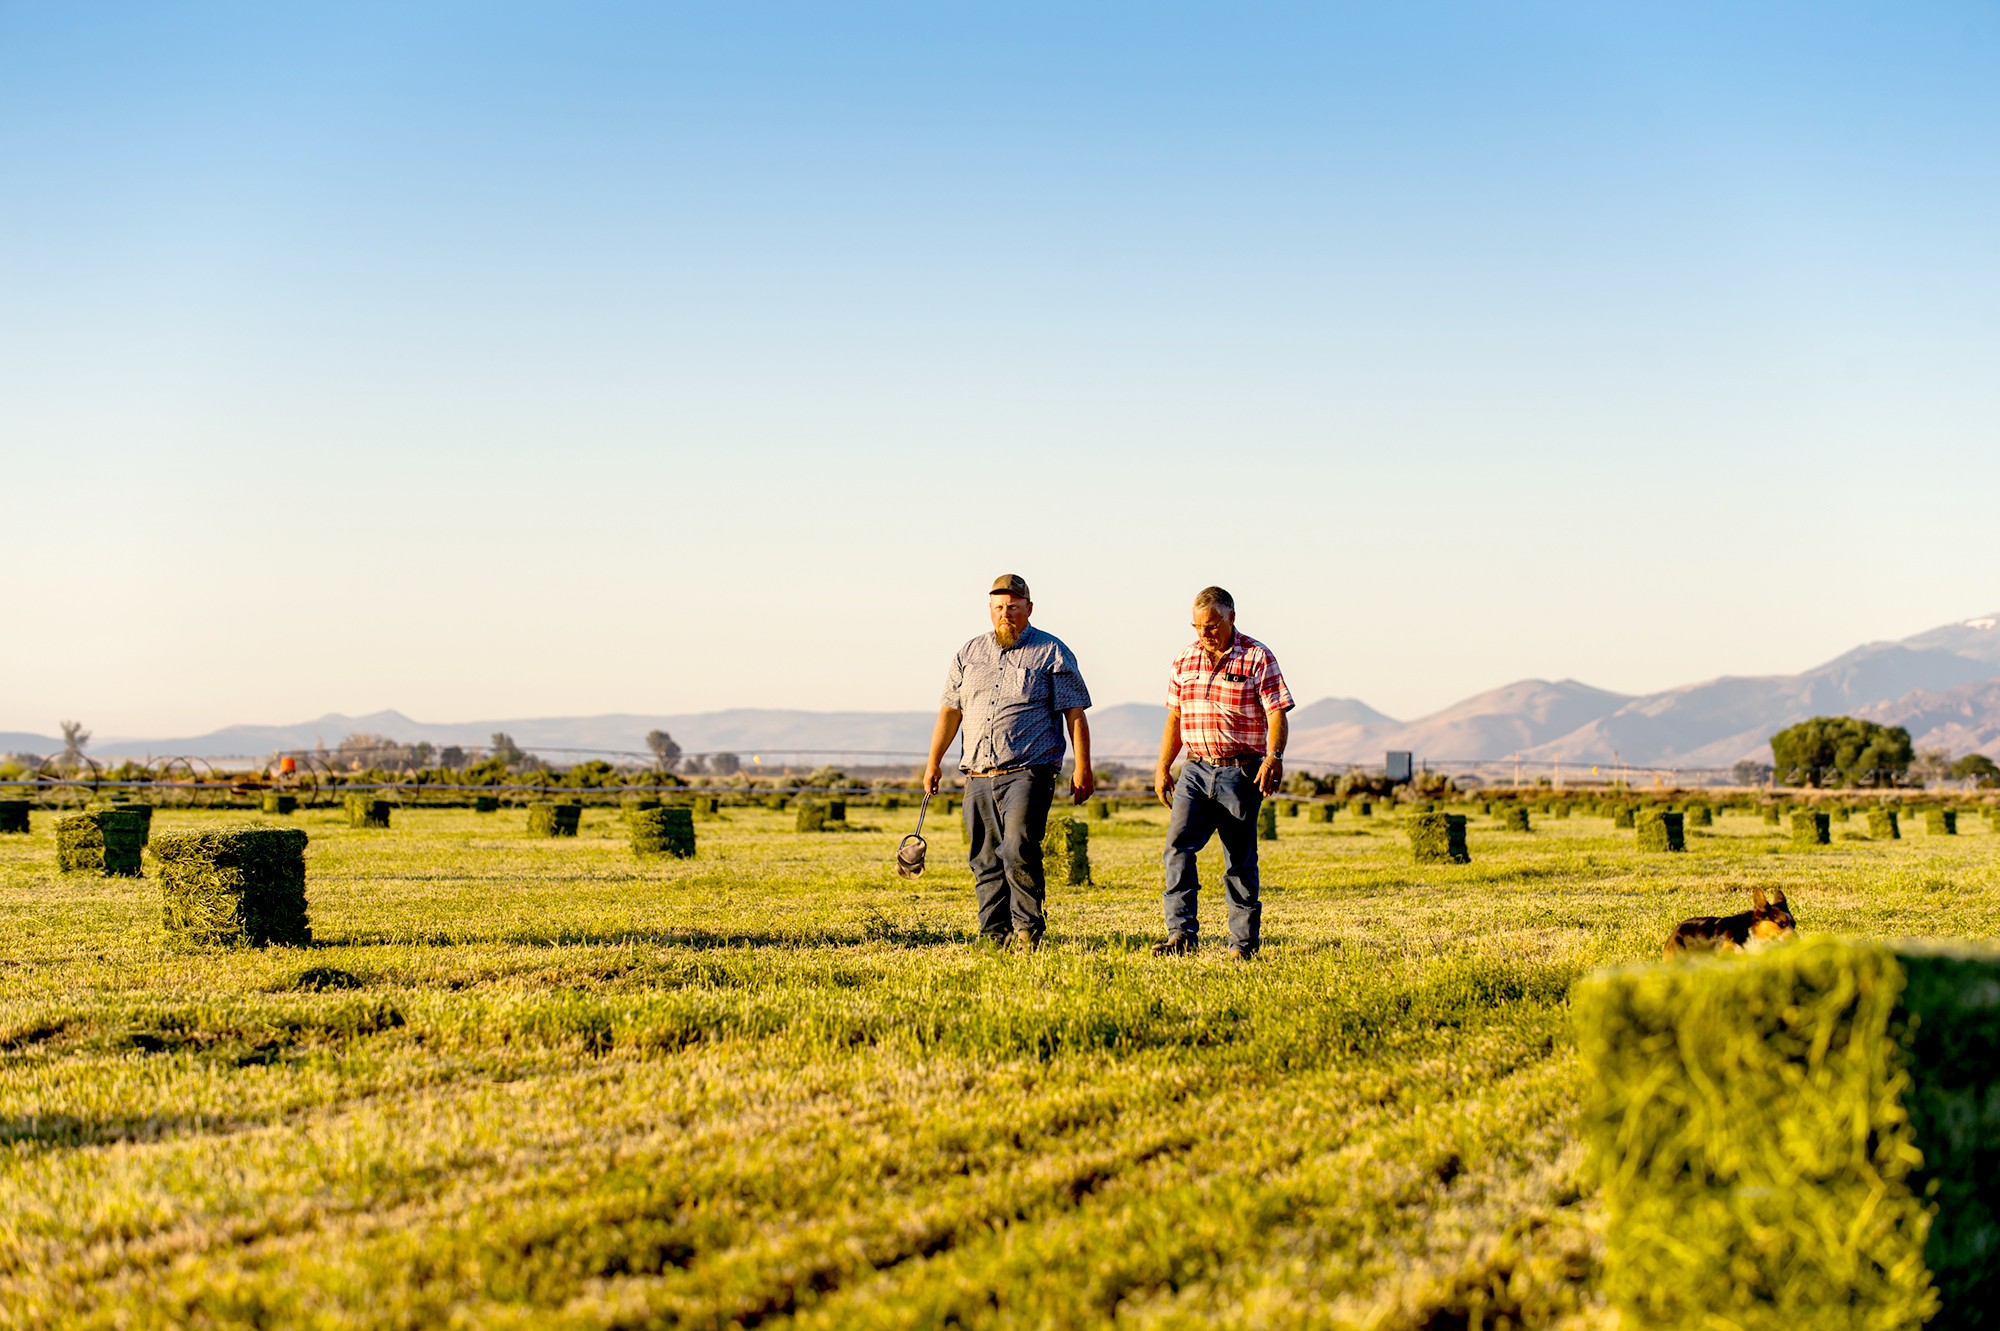 Jon Arreche and his father walking in a field of freshly mowed hay